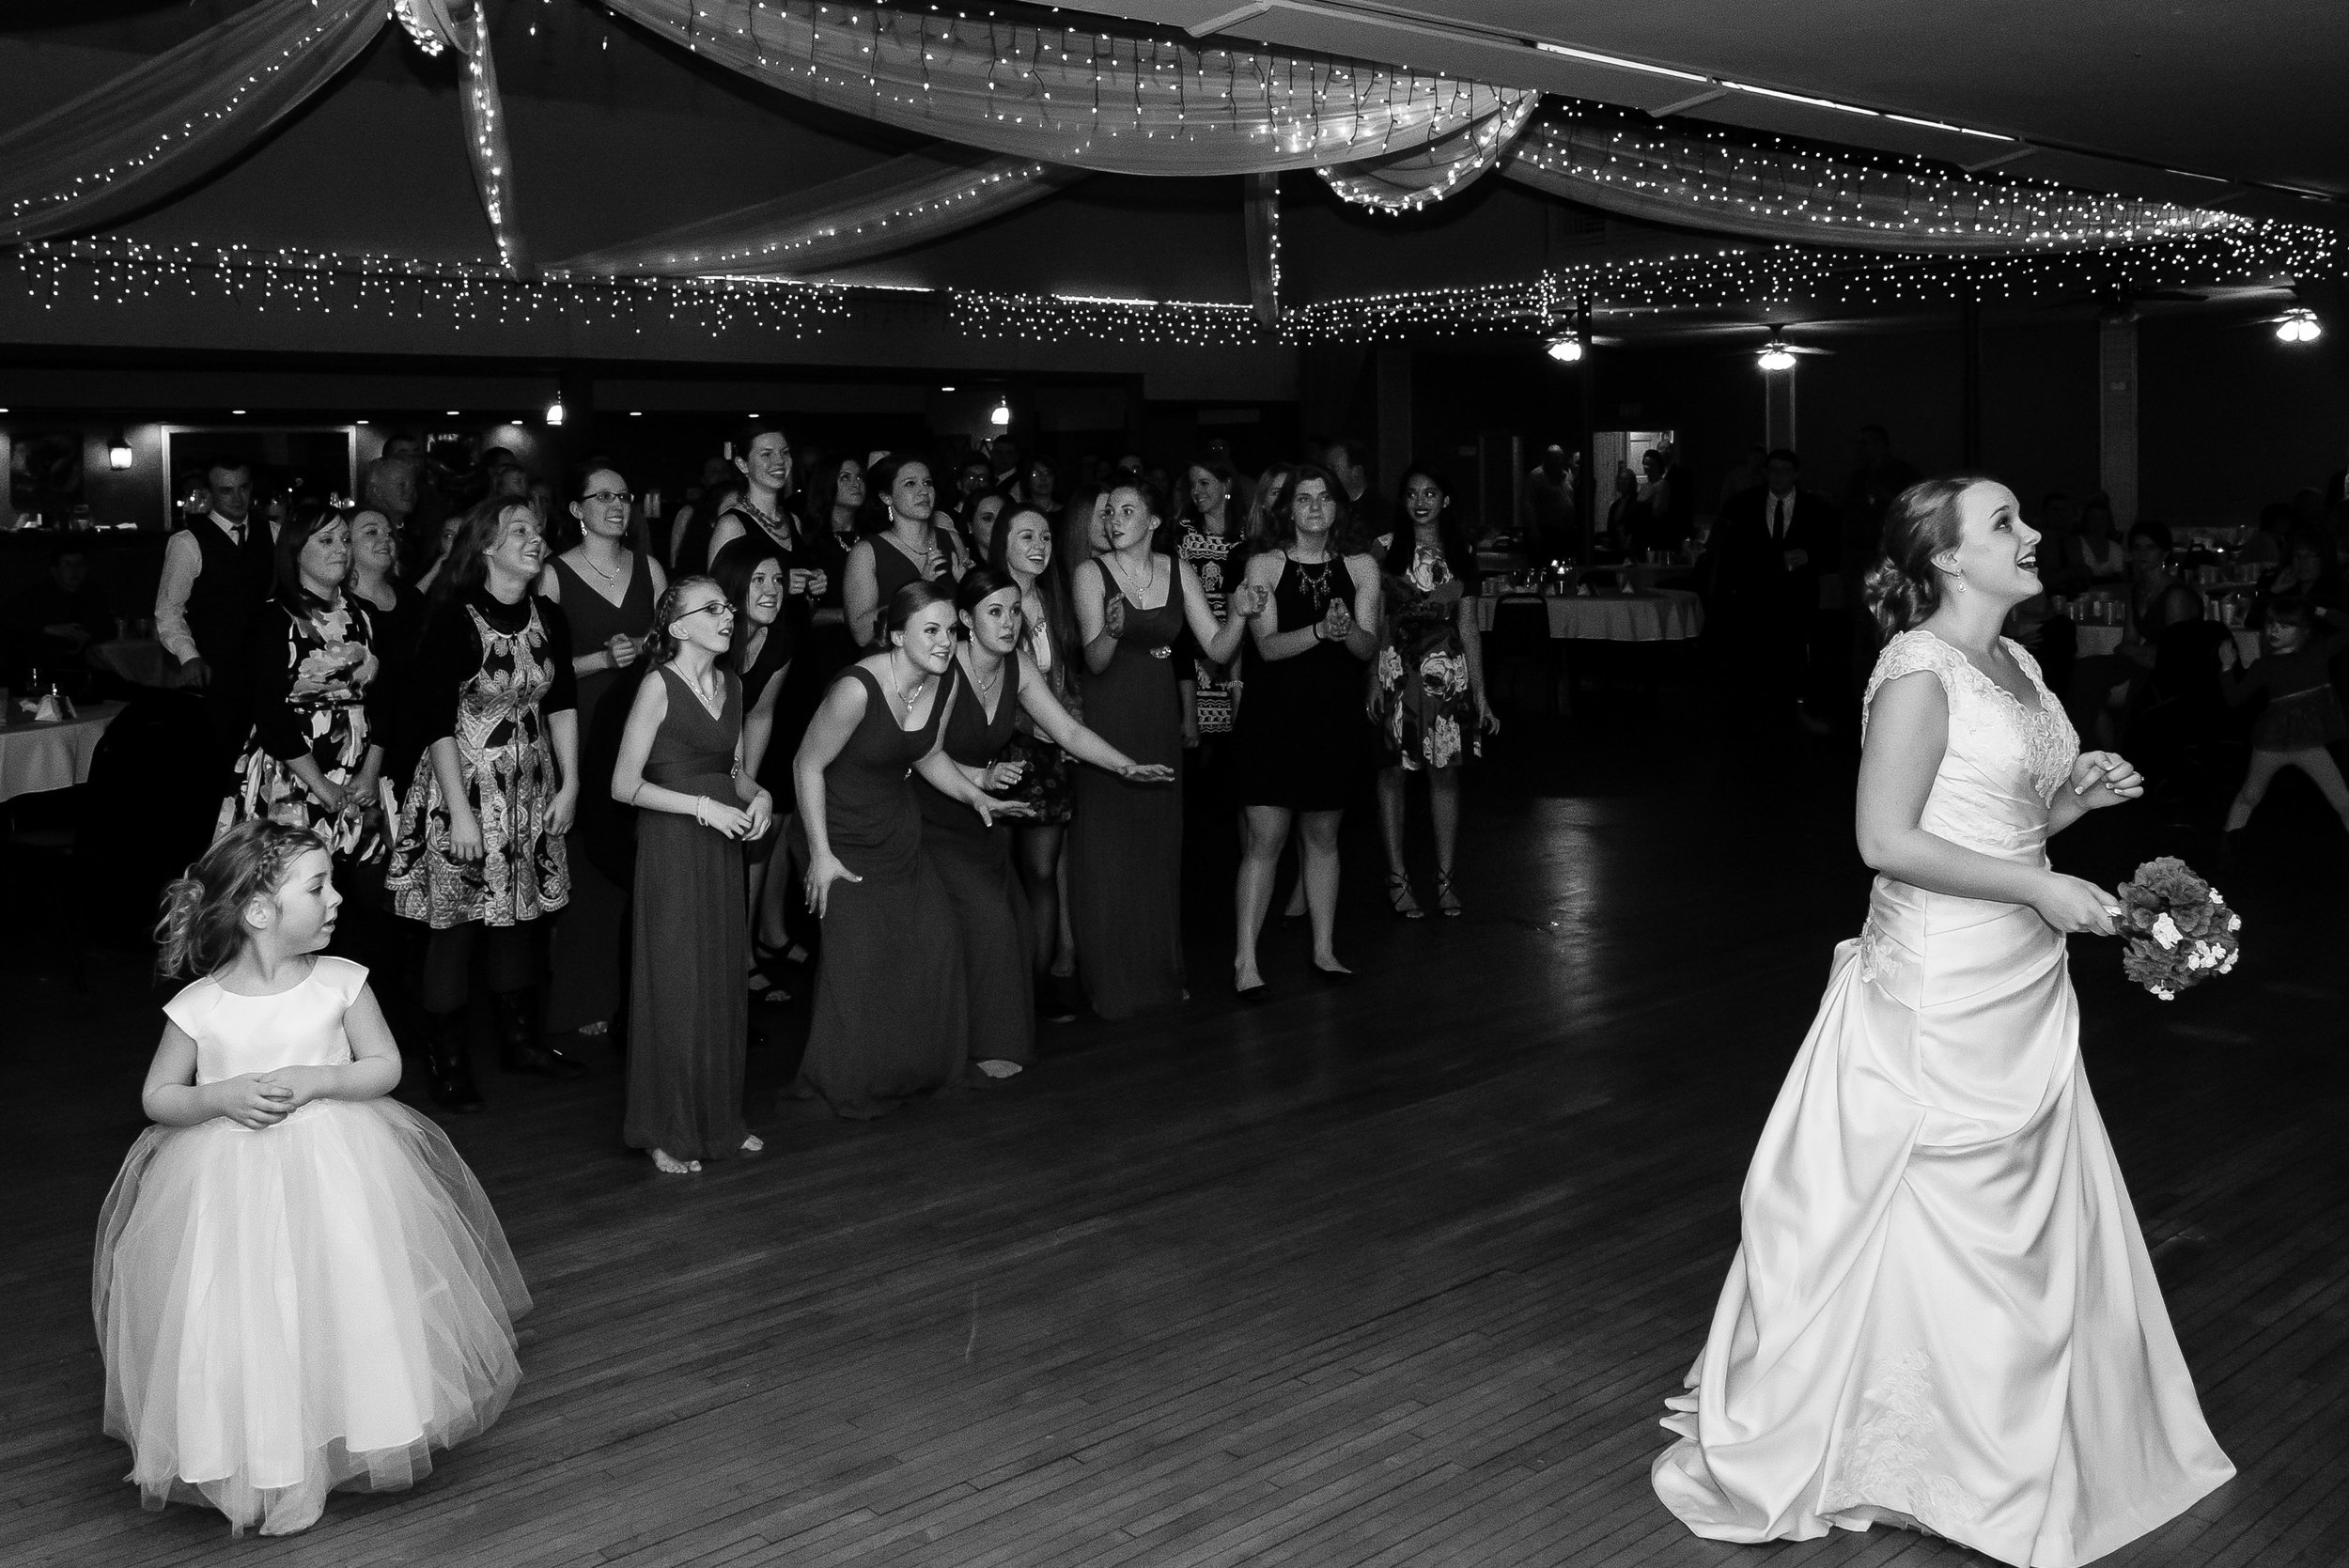 Bride Bouquet Toss at Blue Note Ballroom - Winsted, MN Wedding Photography